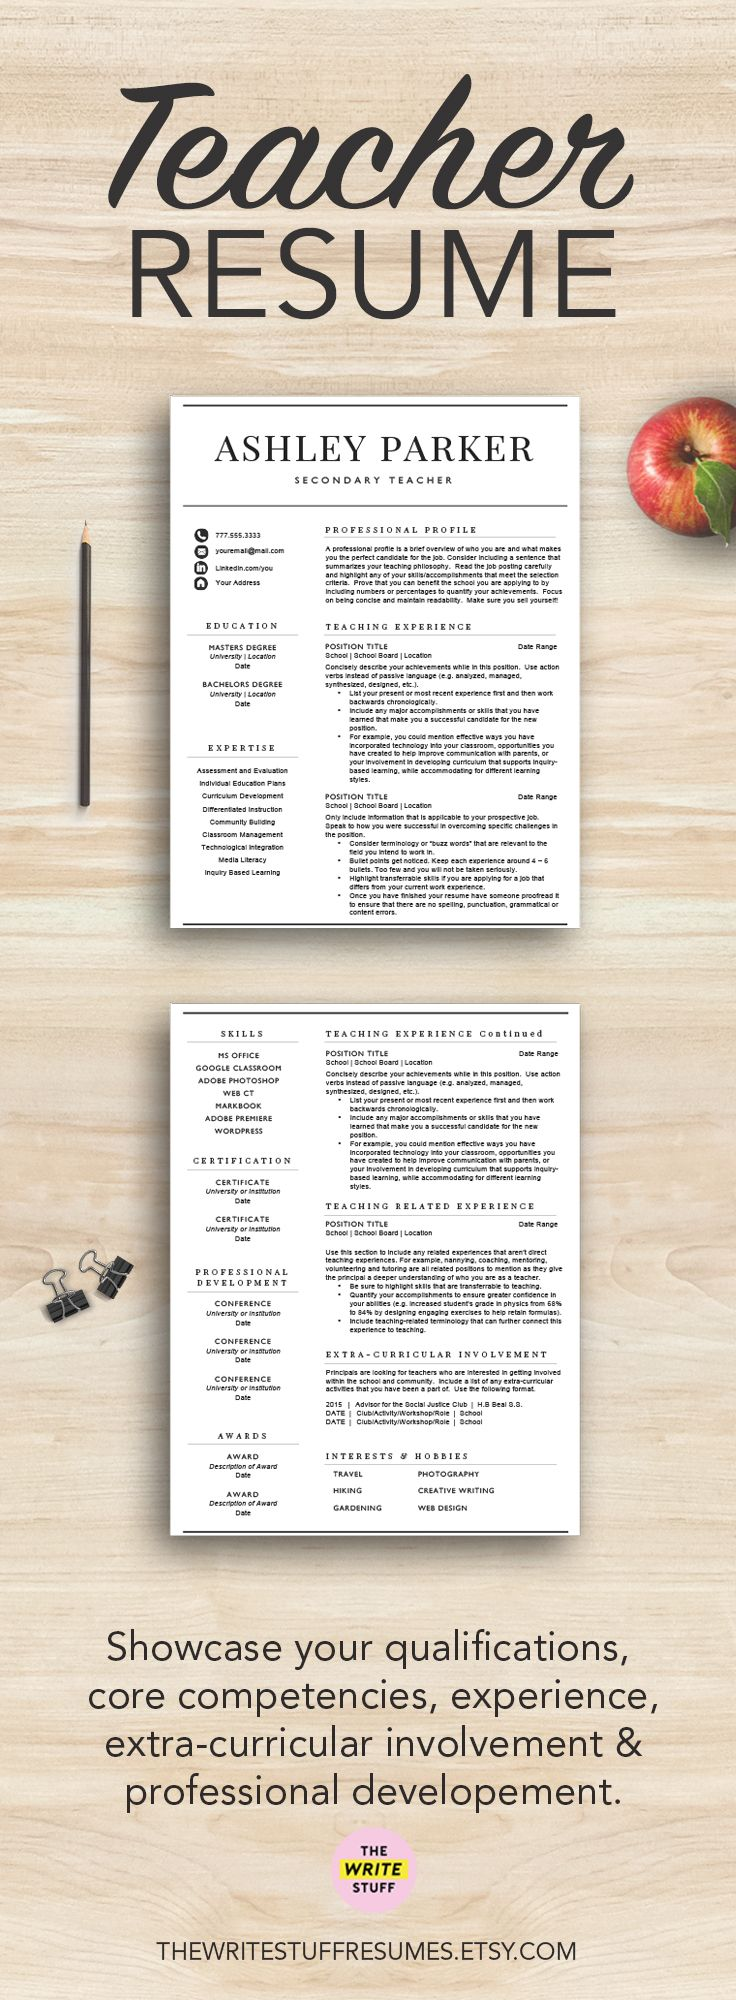 Include Photo In Resume Teacher Resume Template For Word & Pages 1 2 And 3 Page Resume .